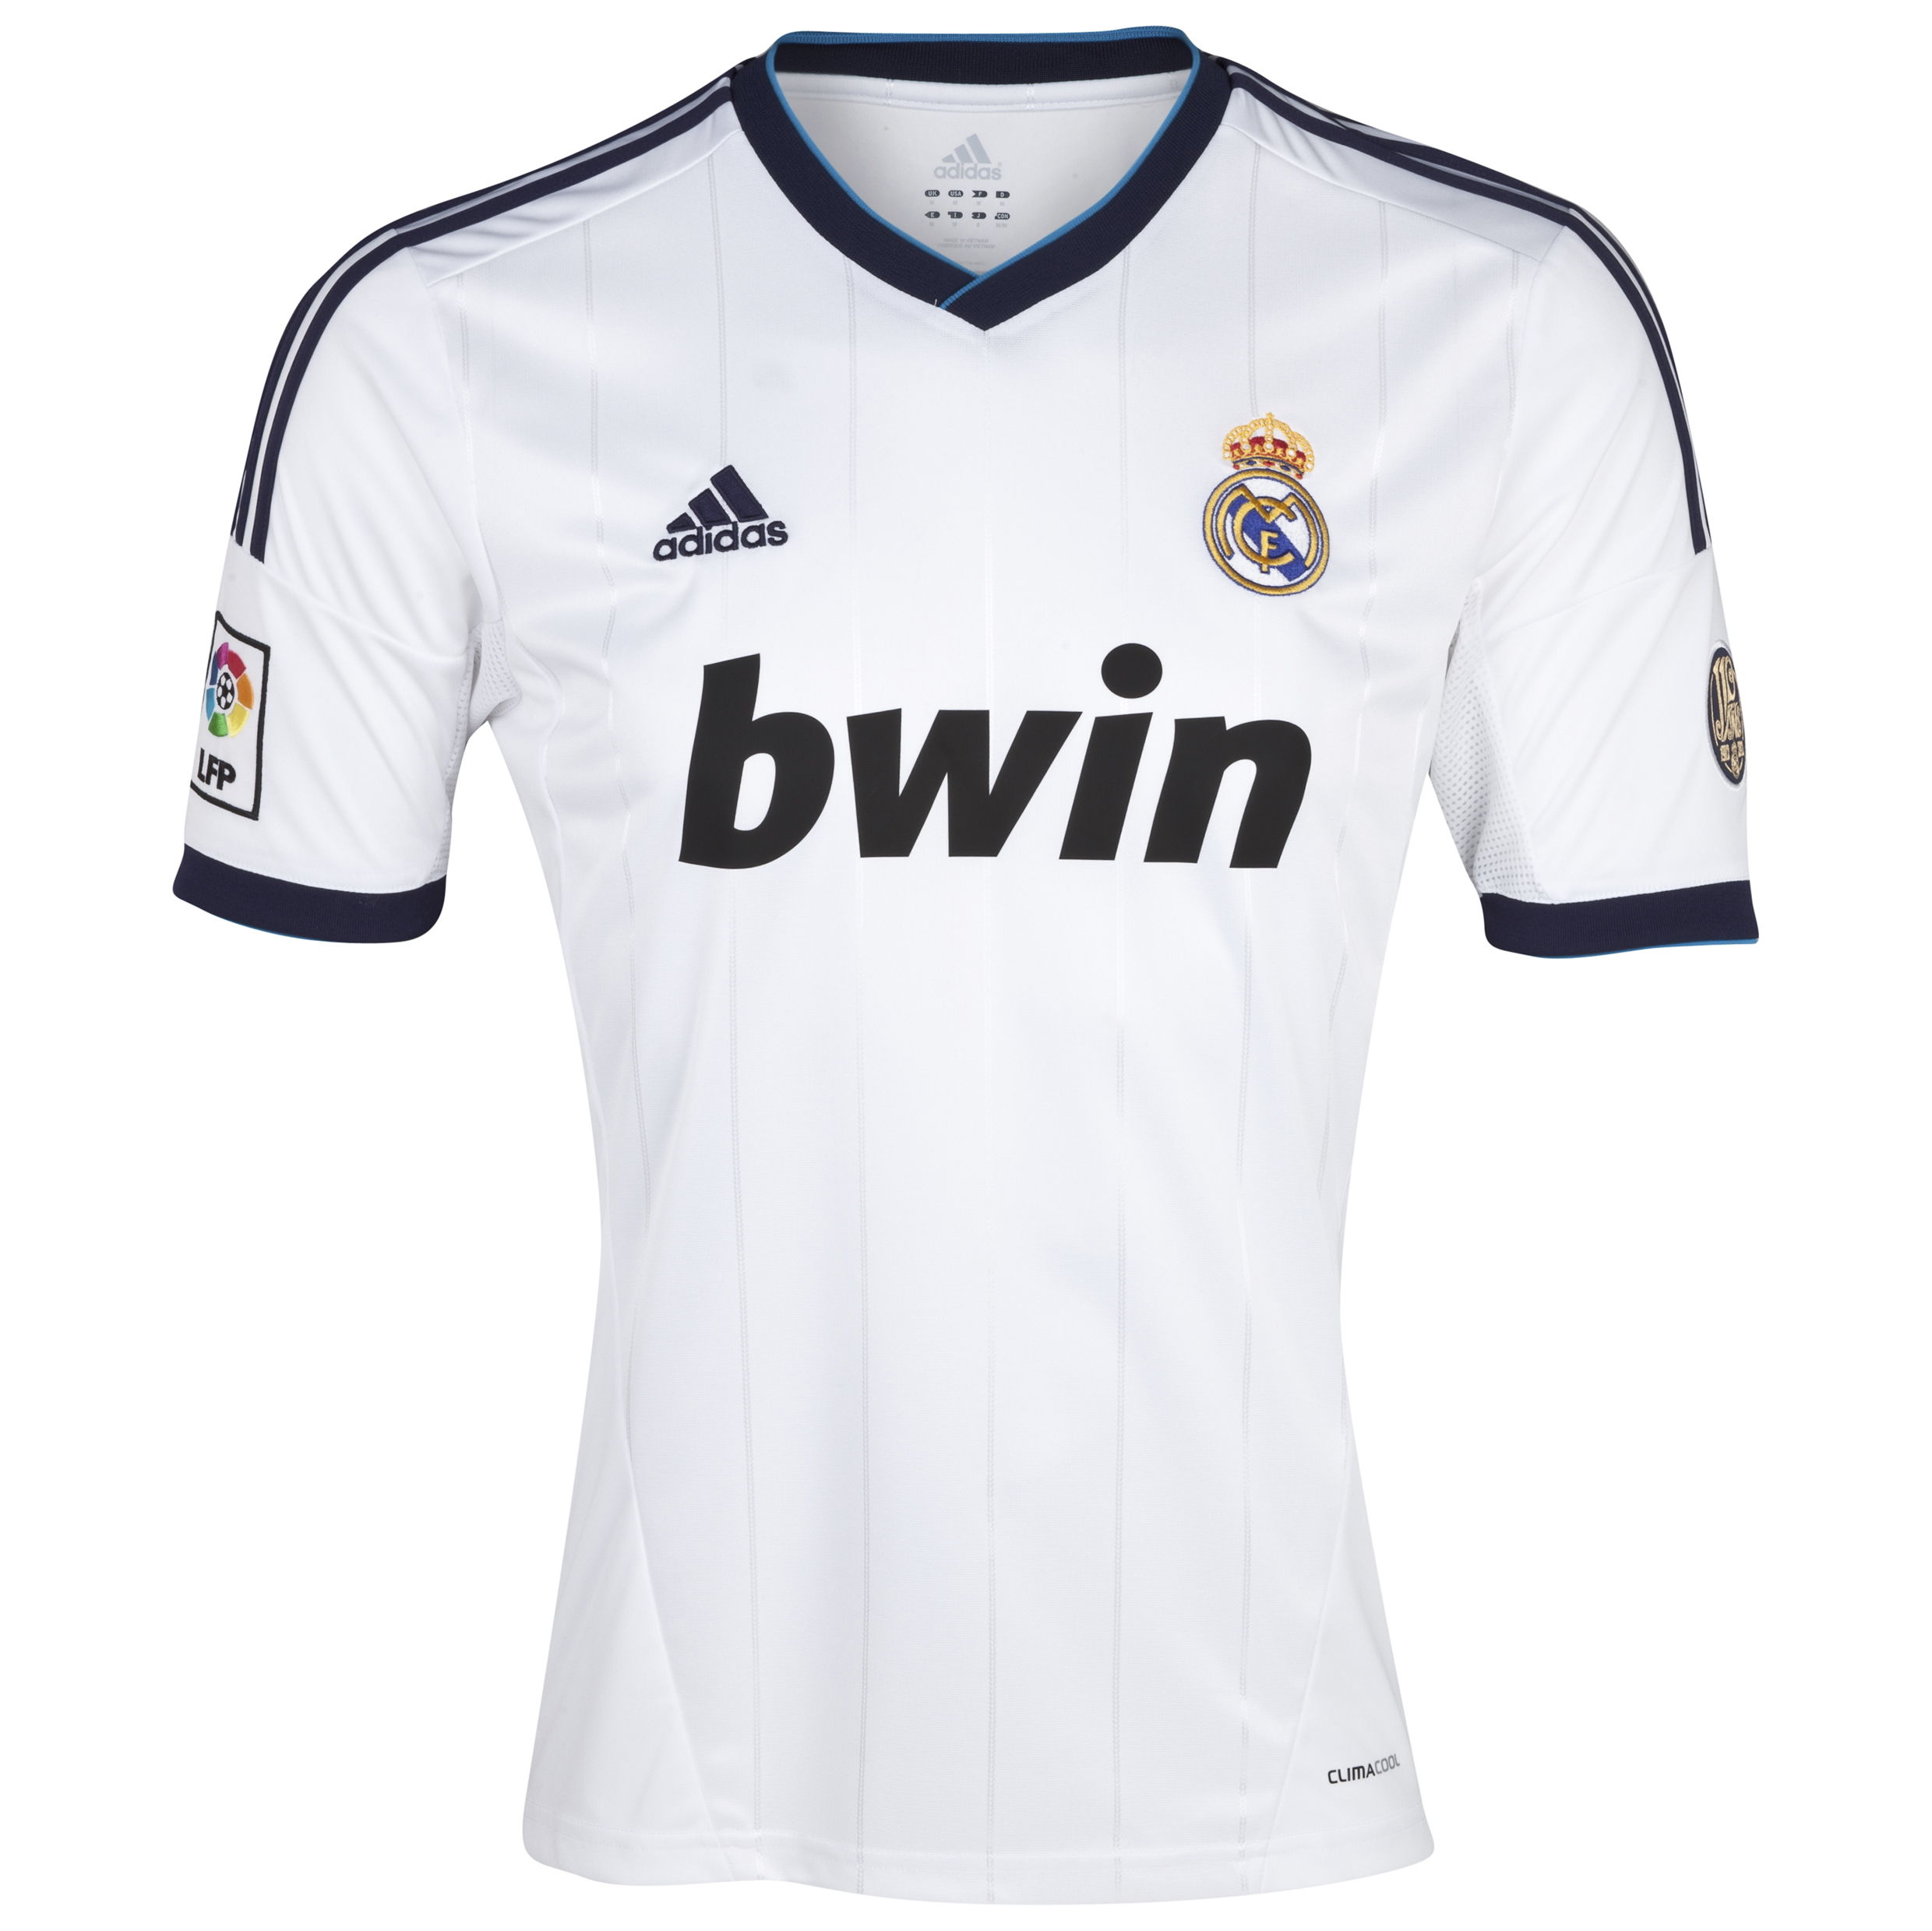 Camiseta 1 equipacin del Real Madrid 2012/13